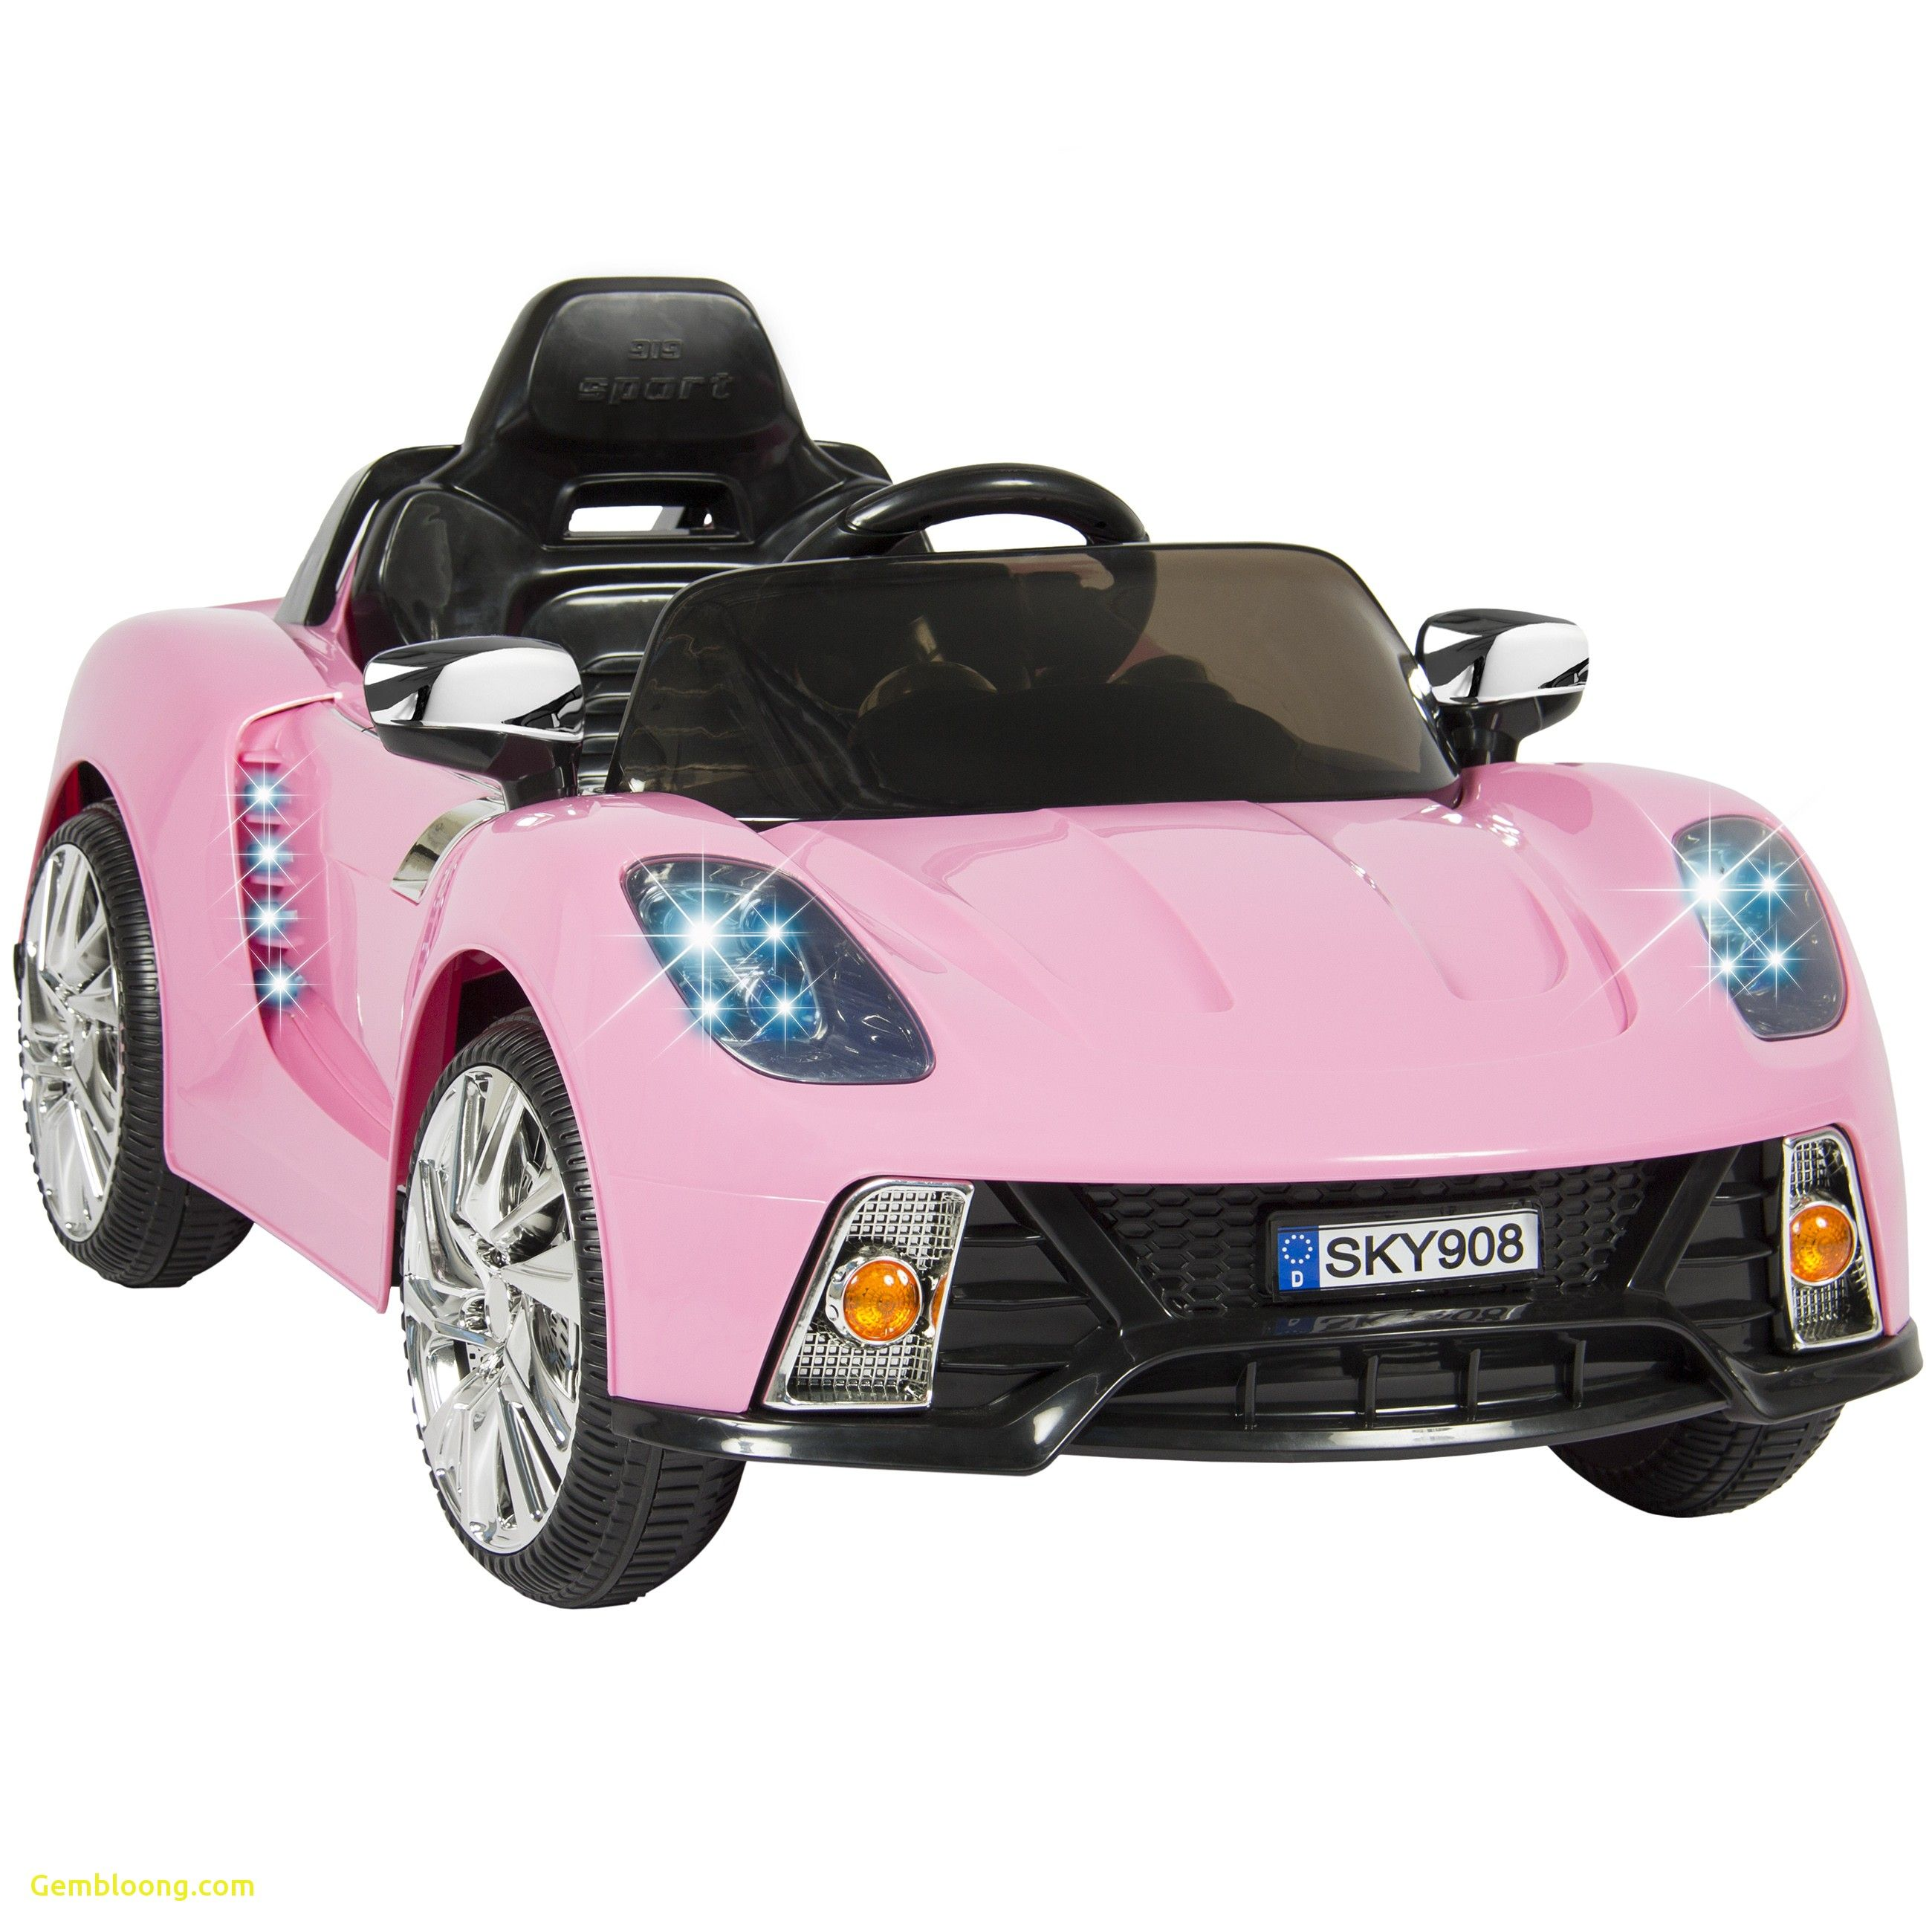 best of kids power cars pleasant to my own blog within this moment i